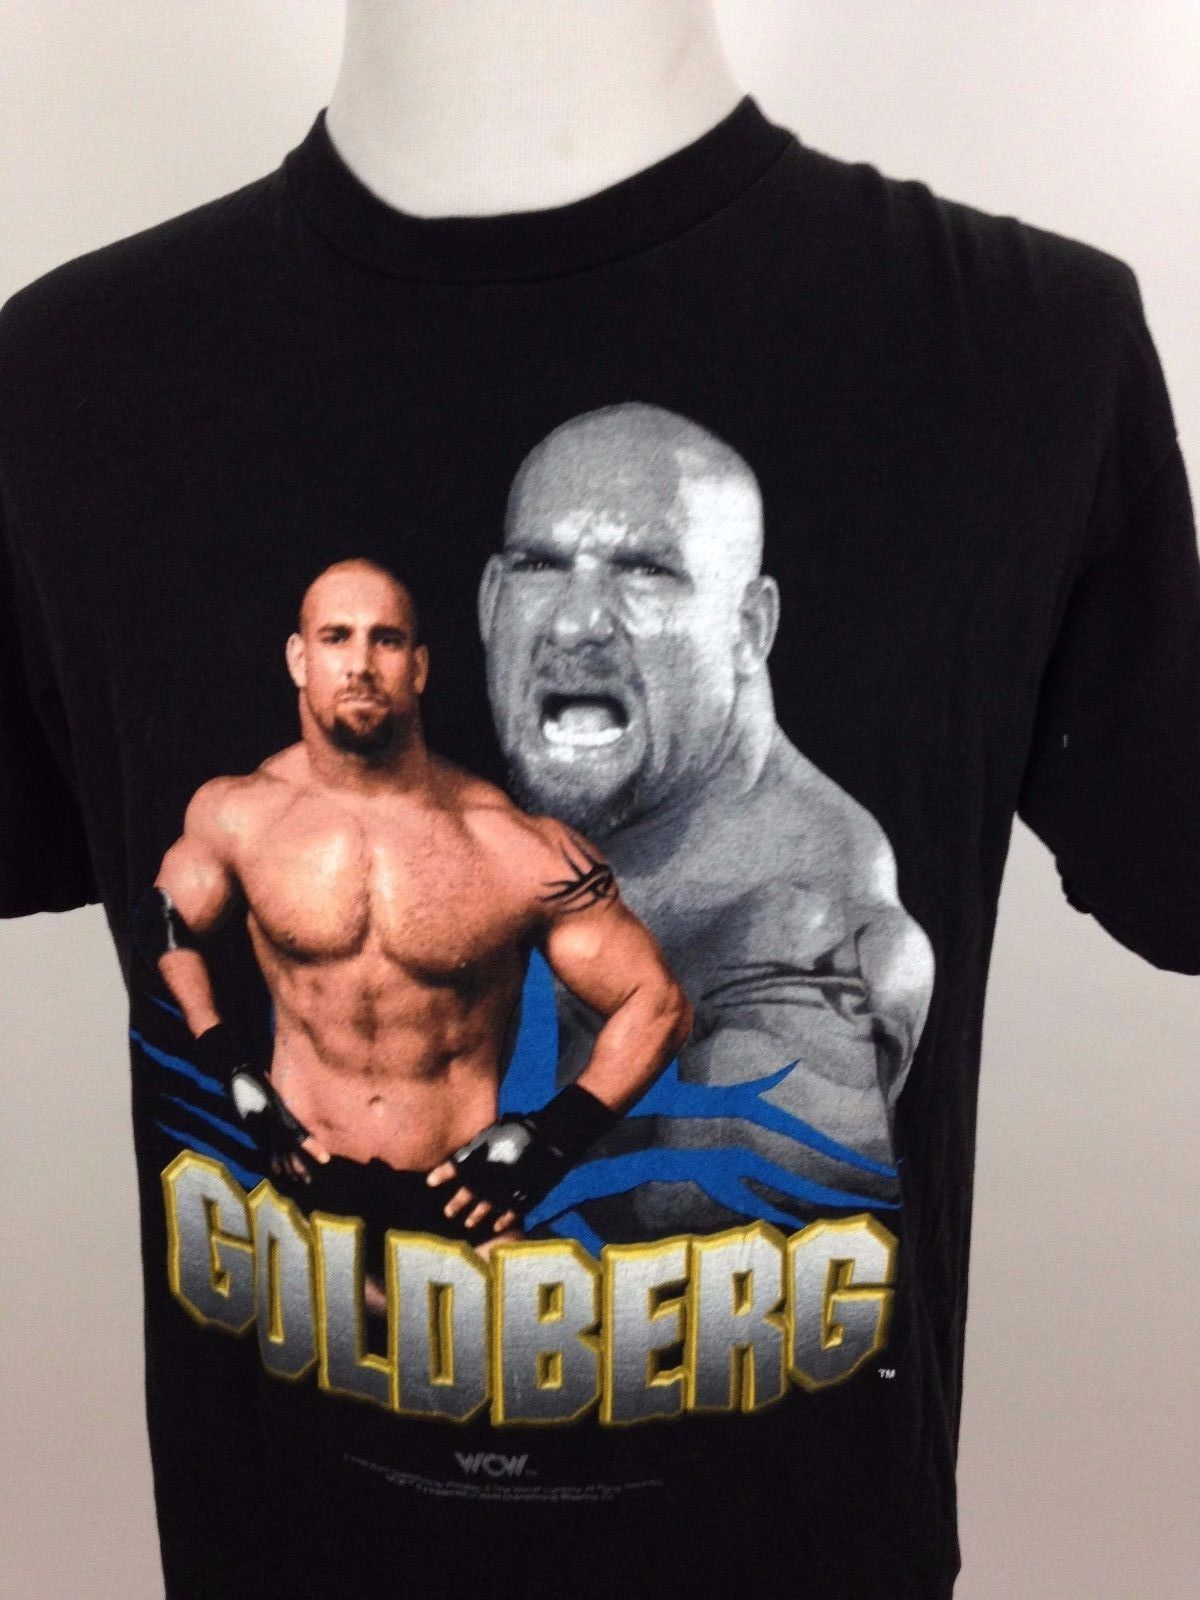 Vintage 1998 WCW Bill Goldberg T-Shirt Black Large 90s Wrestling